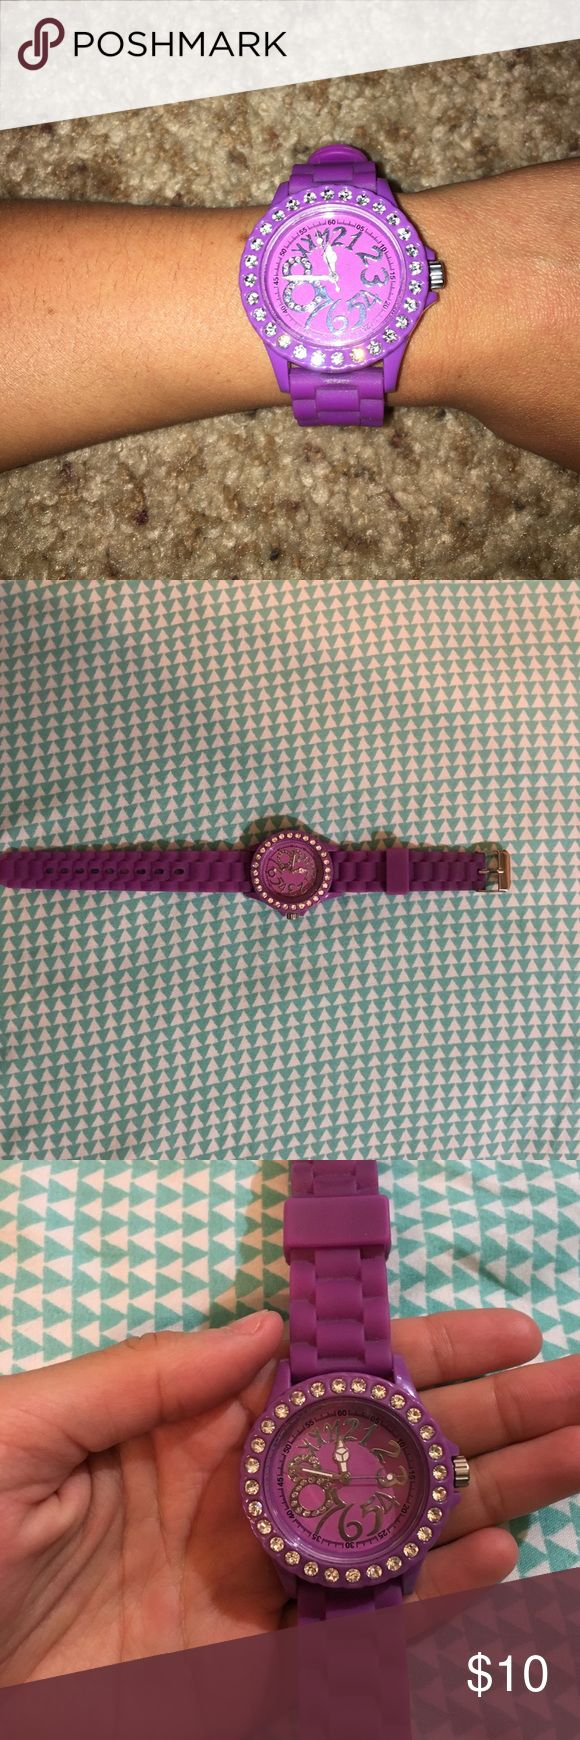 Charming Charlie's Women's  Watch This darker/bright purple watch looks great with any outfit! Sparkly gems on outer ring of watch face. Minor scratches. New battery installed. Charming Charlie Accessories Watches